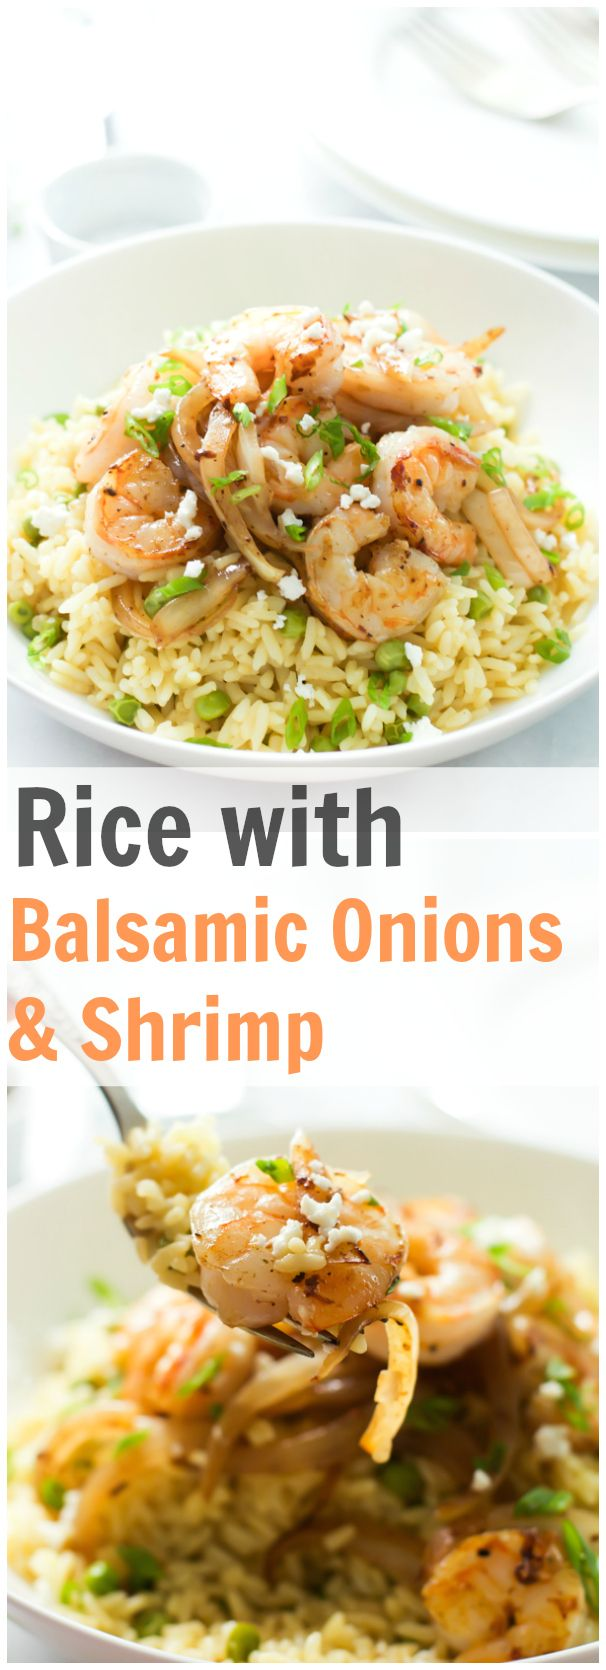 Save your time cooking easy making this quick and delicious Rice with Balsamic Onions and Shrimp. primaverakitchen.com